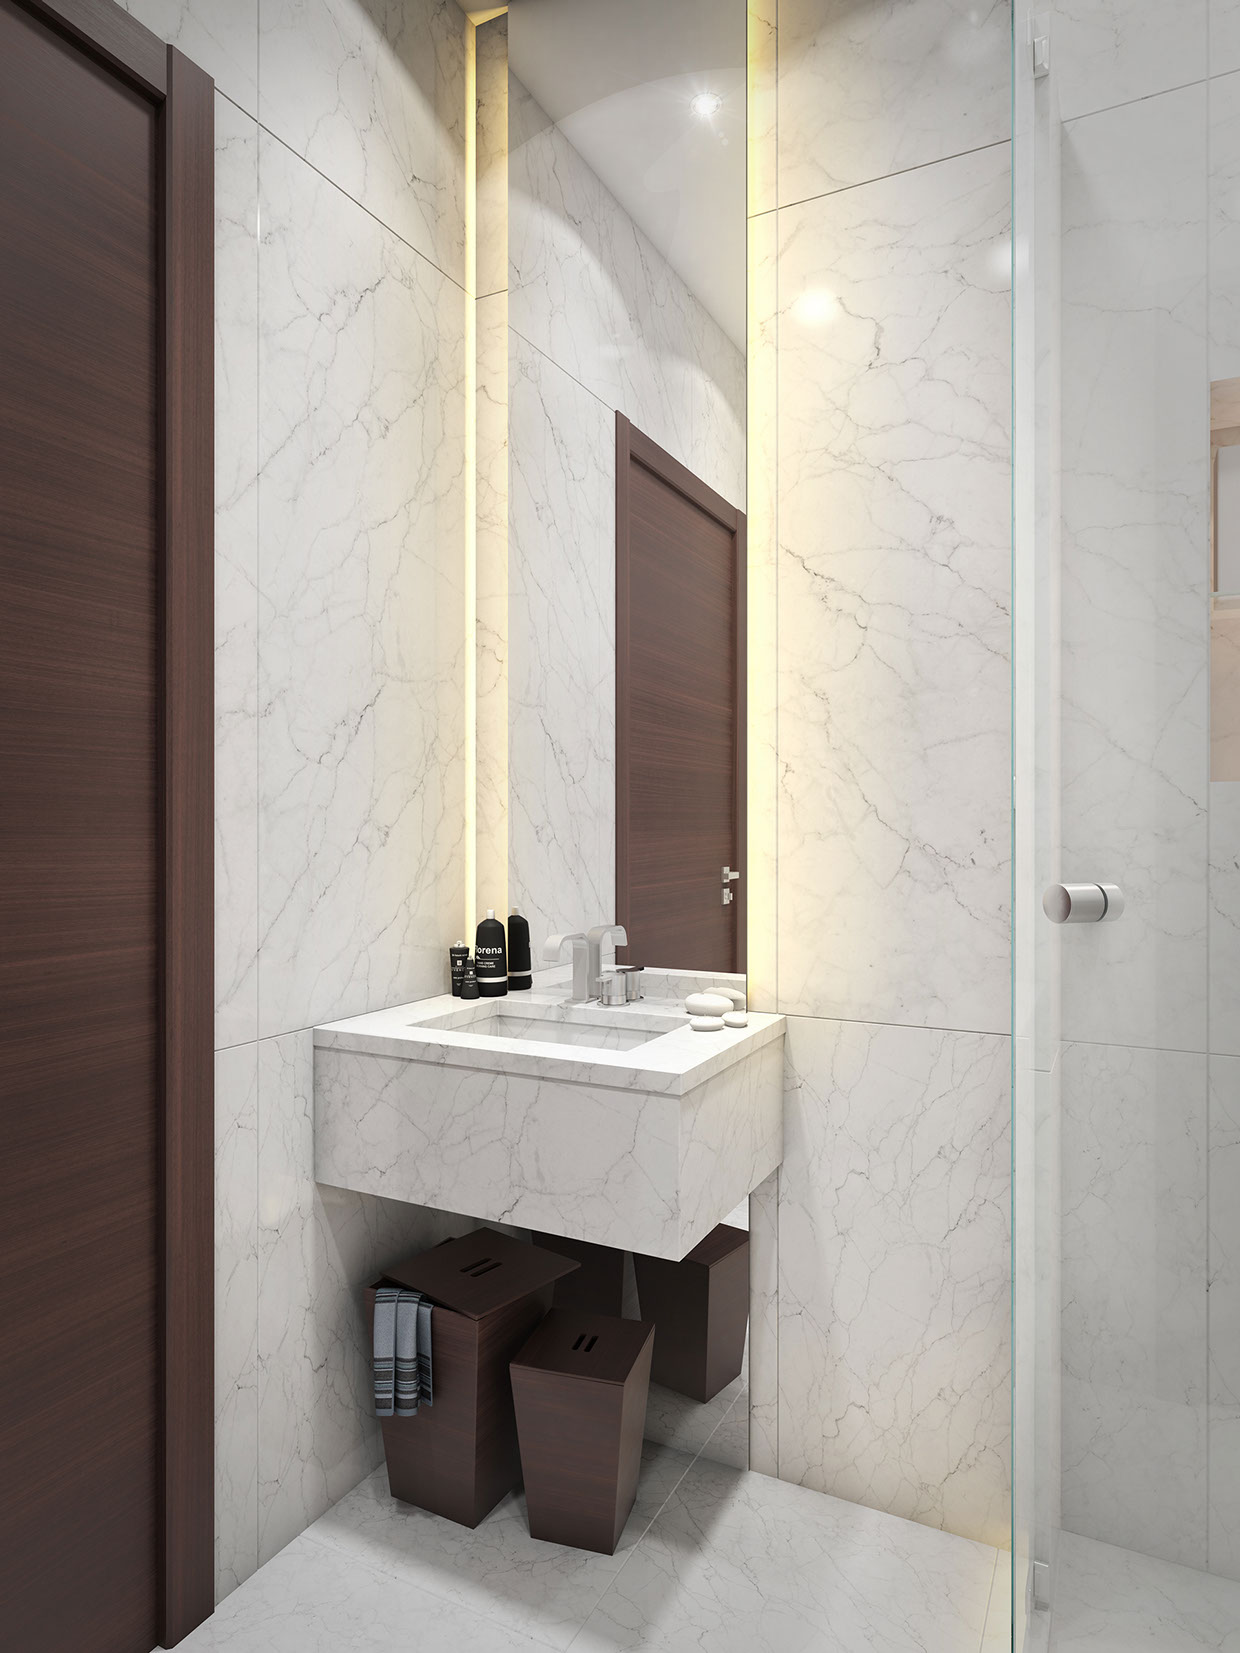 Marble Bathroom - 3 super small homes with floor area under 400 square feet 40 square meter